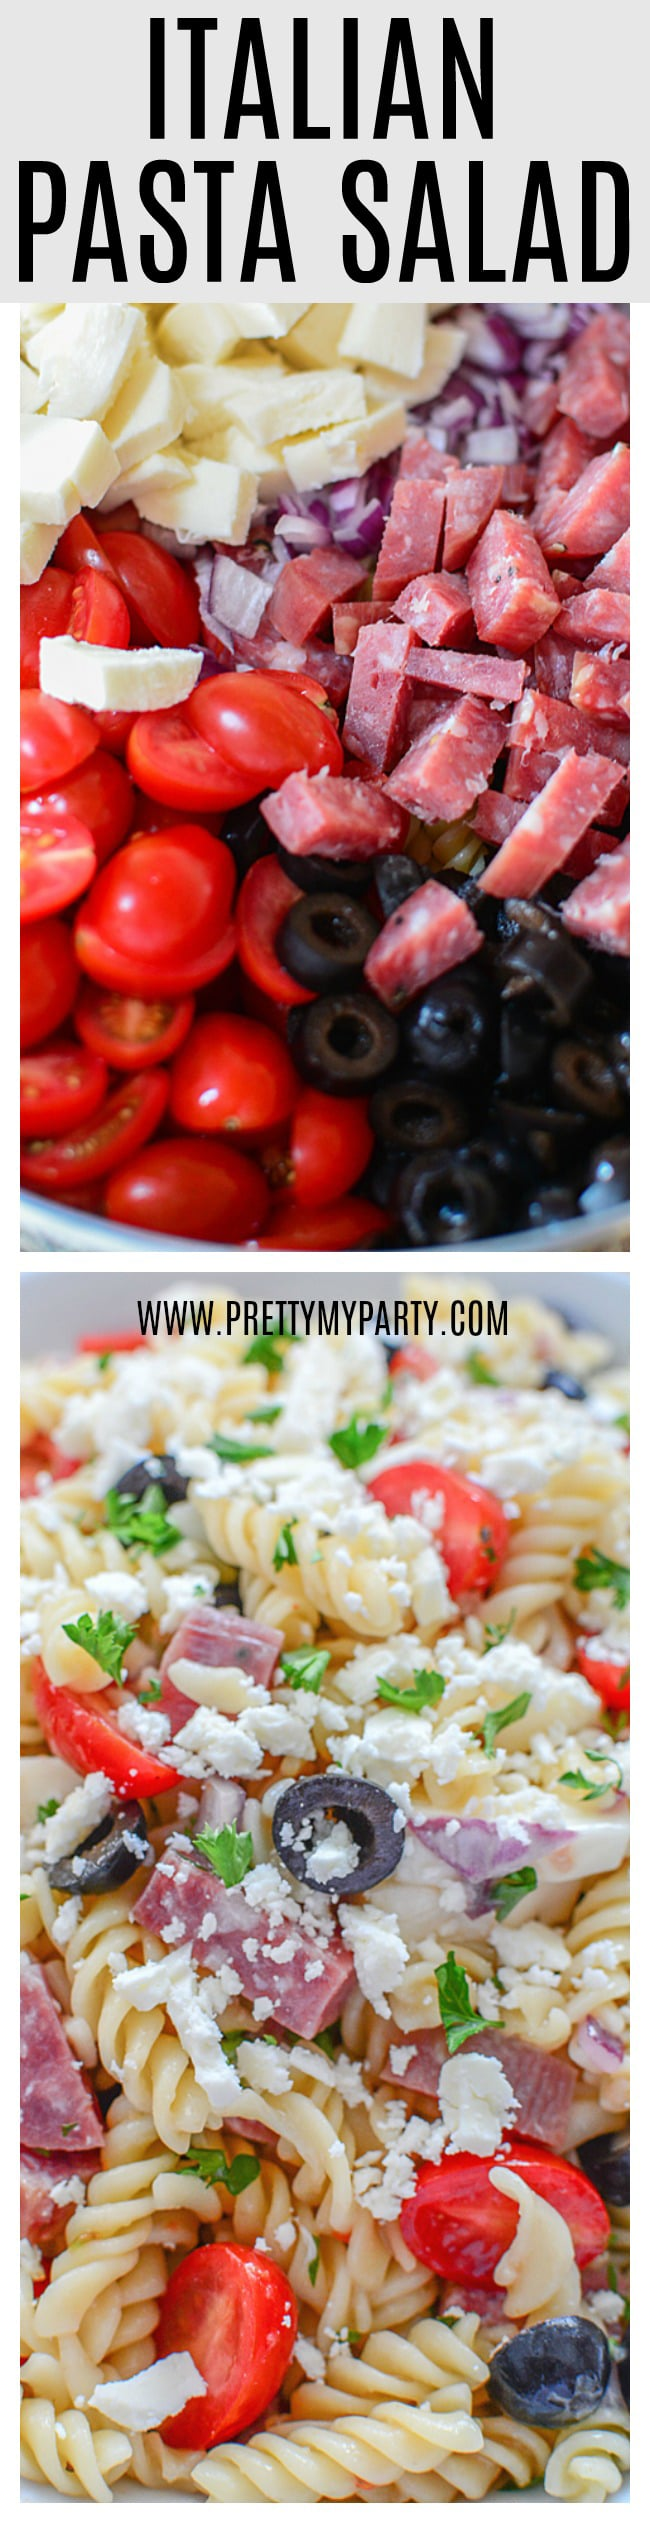 Grab the recipe for this Easy Classic Italian Pasta Salad from Pretty My Party. It's the perfect side dish for parties, summer barbecues and more. It feeds a large crowd and is delicious.